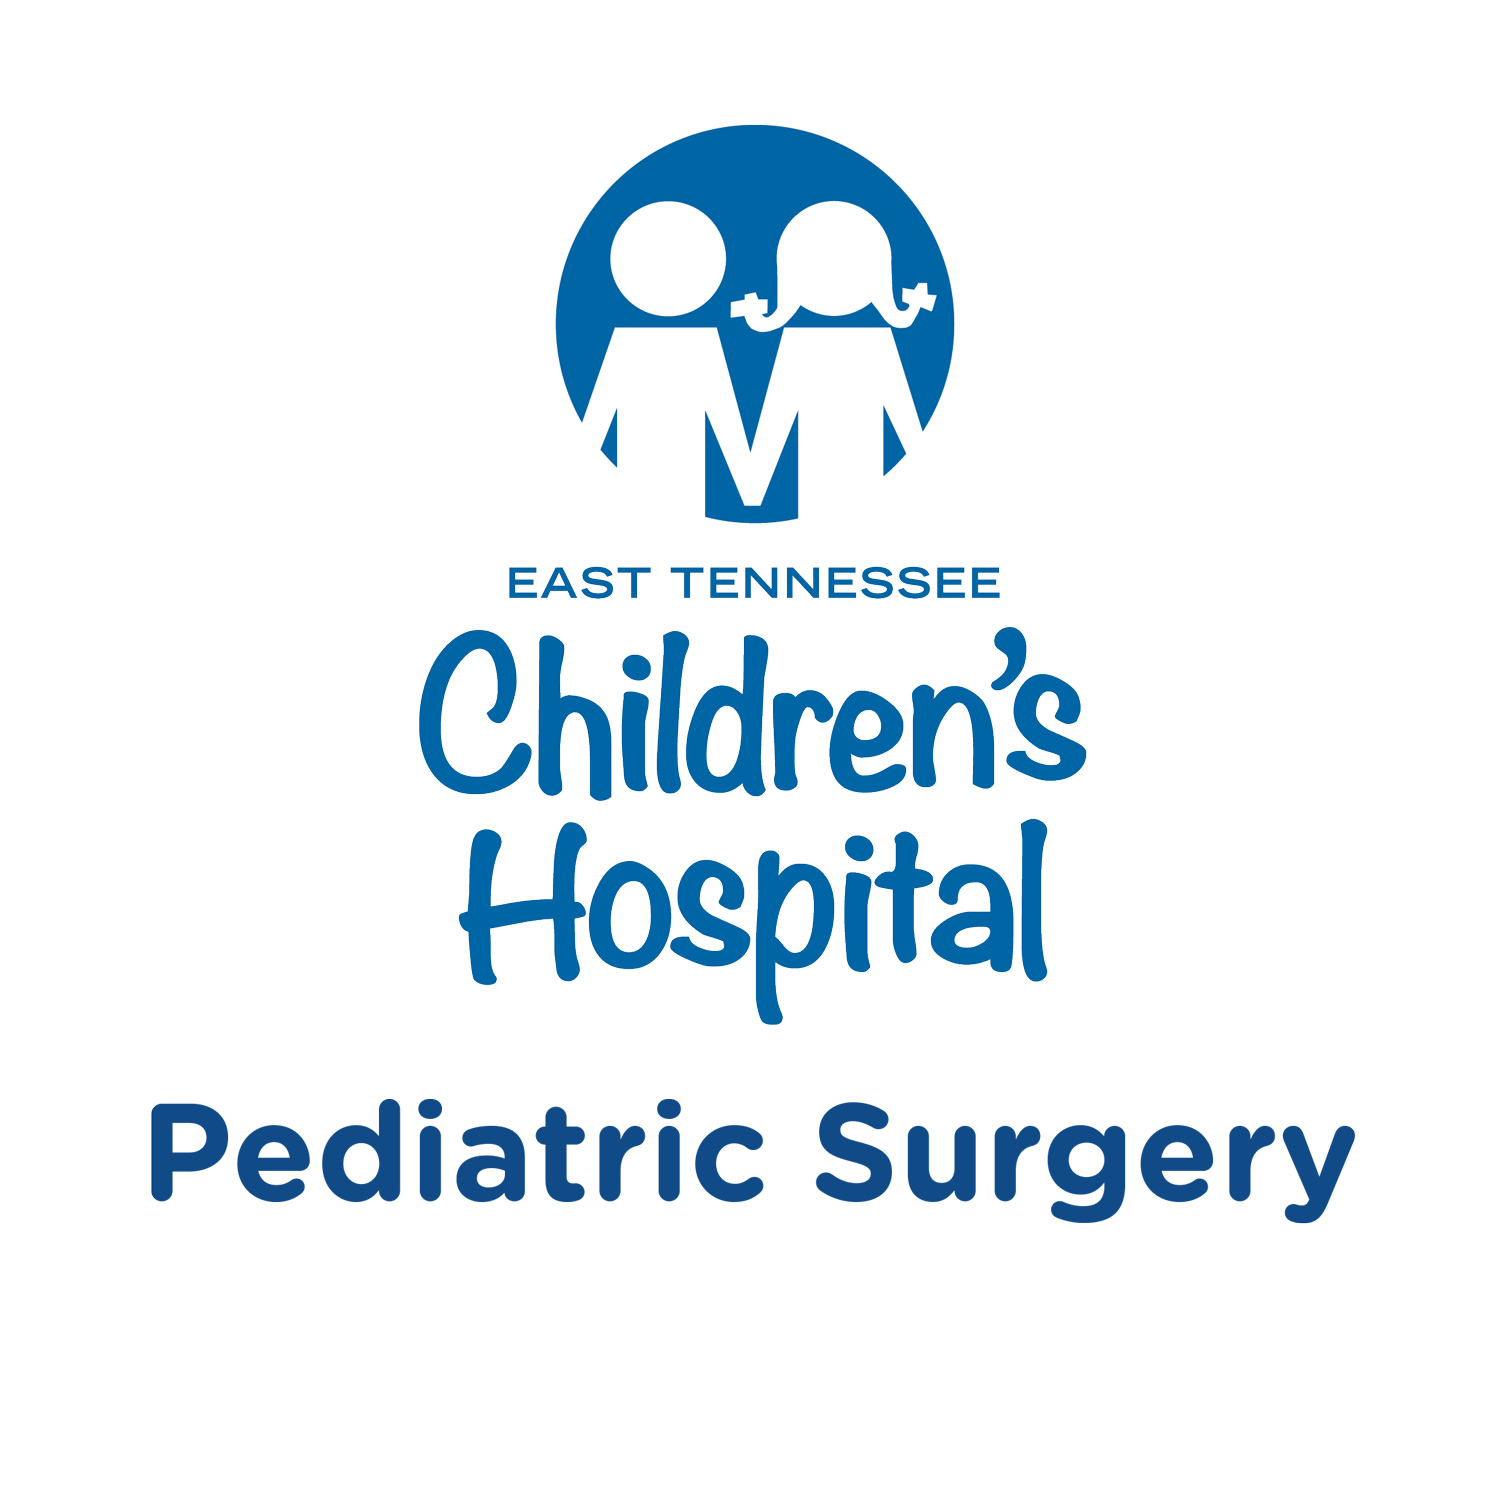 East Tennessee Pediatric Surgery Group